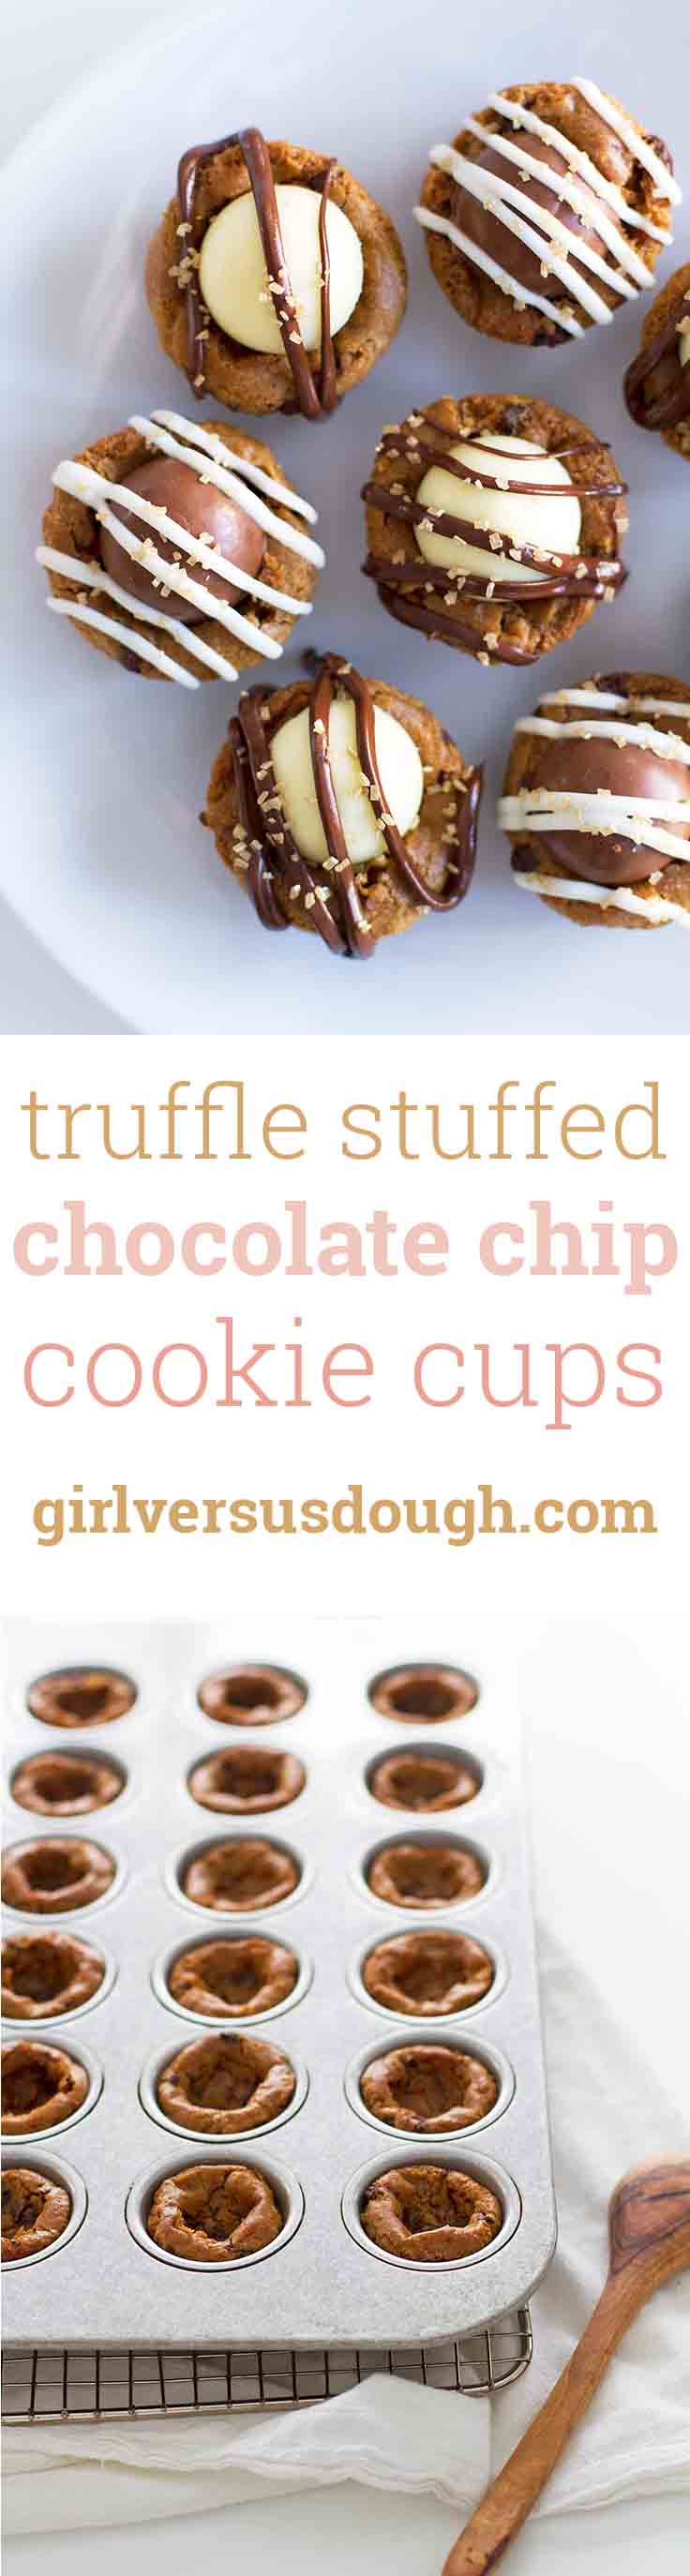 Truffle Stuffed Chocolate Chip Cookie Cups -- gluten free chocolate chip cookies stuffed with melted chocolate and chocolate truffles for a decadent, bite-size treat that's perfect for holiday parties and cookie exchanges! girlversusdough.com @girlversusdough